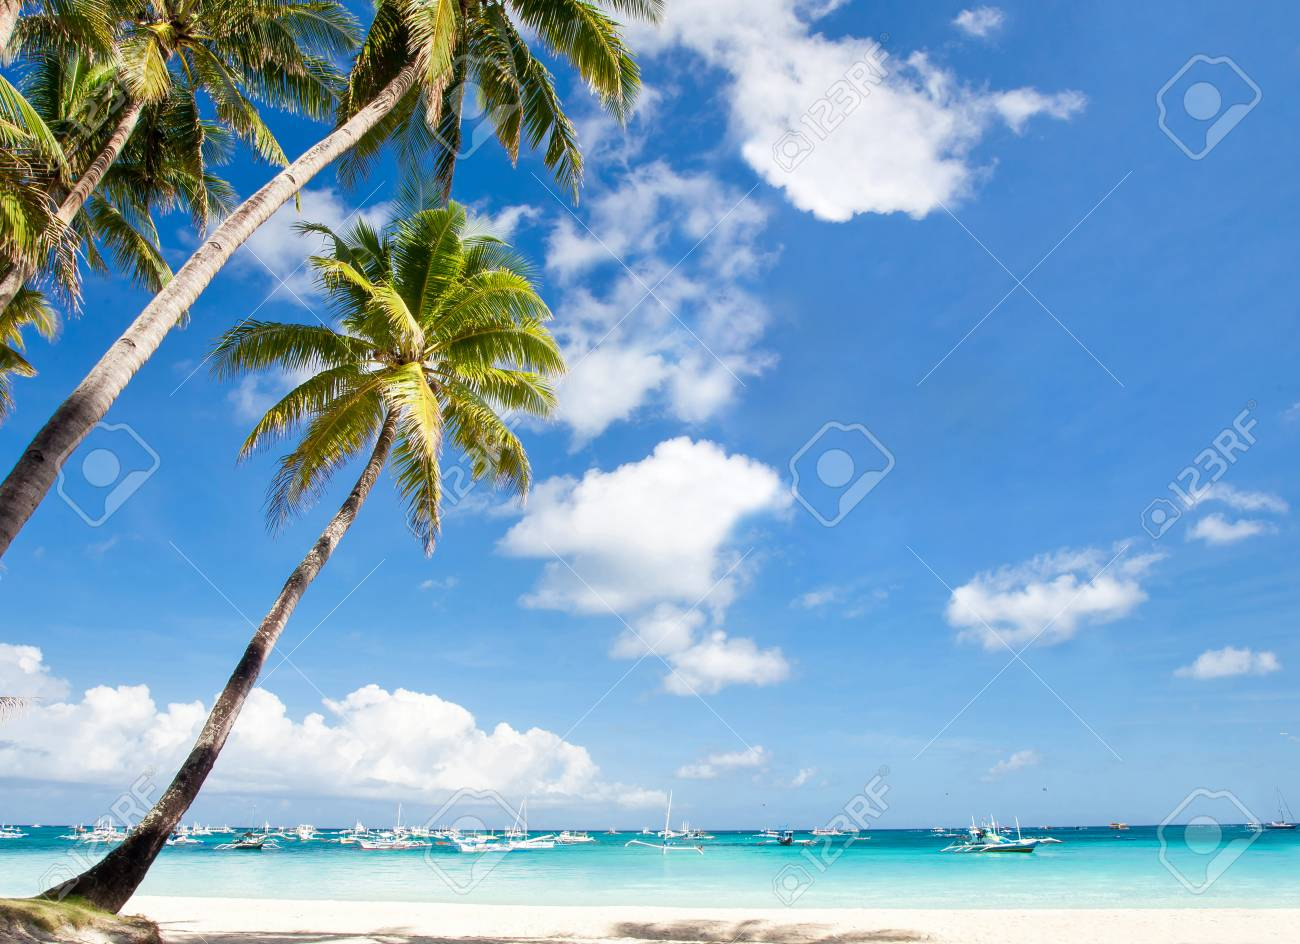 coconut palm trees on tropical sandy beach, travel destinations